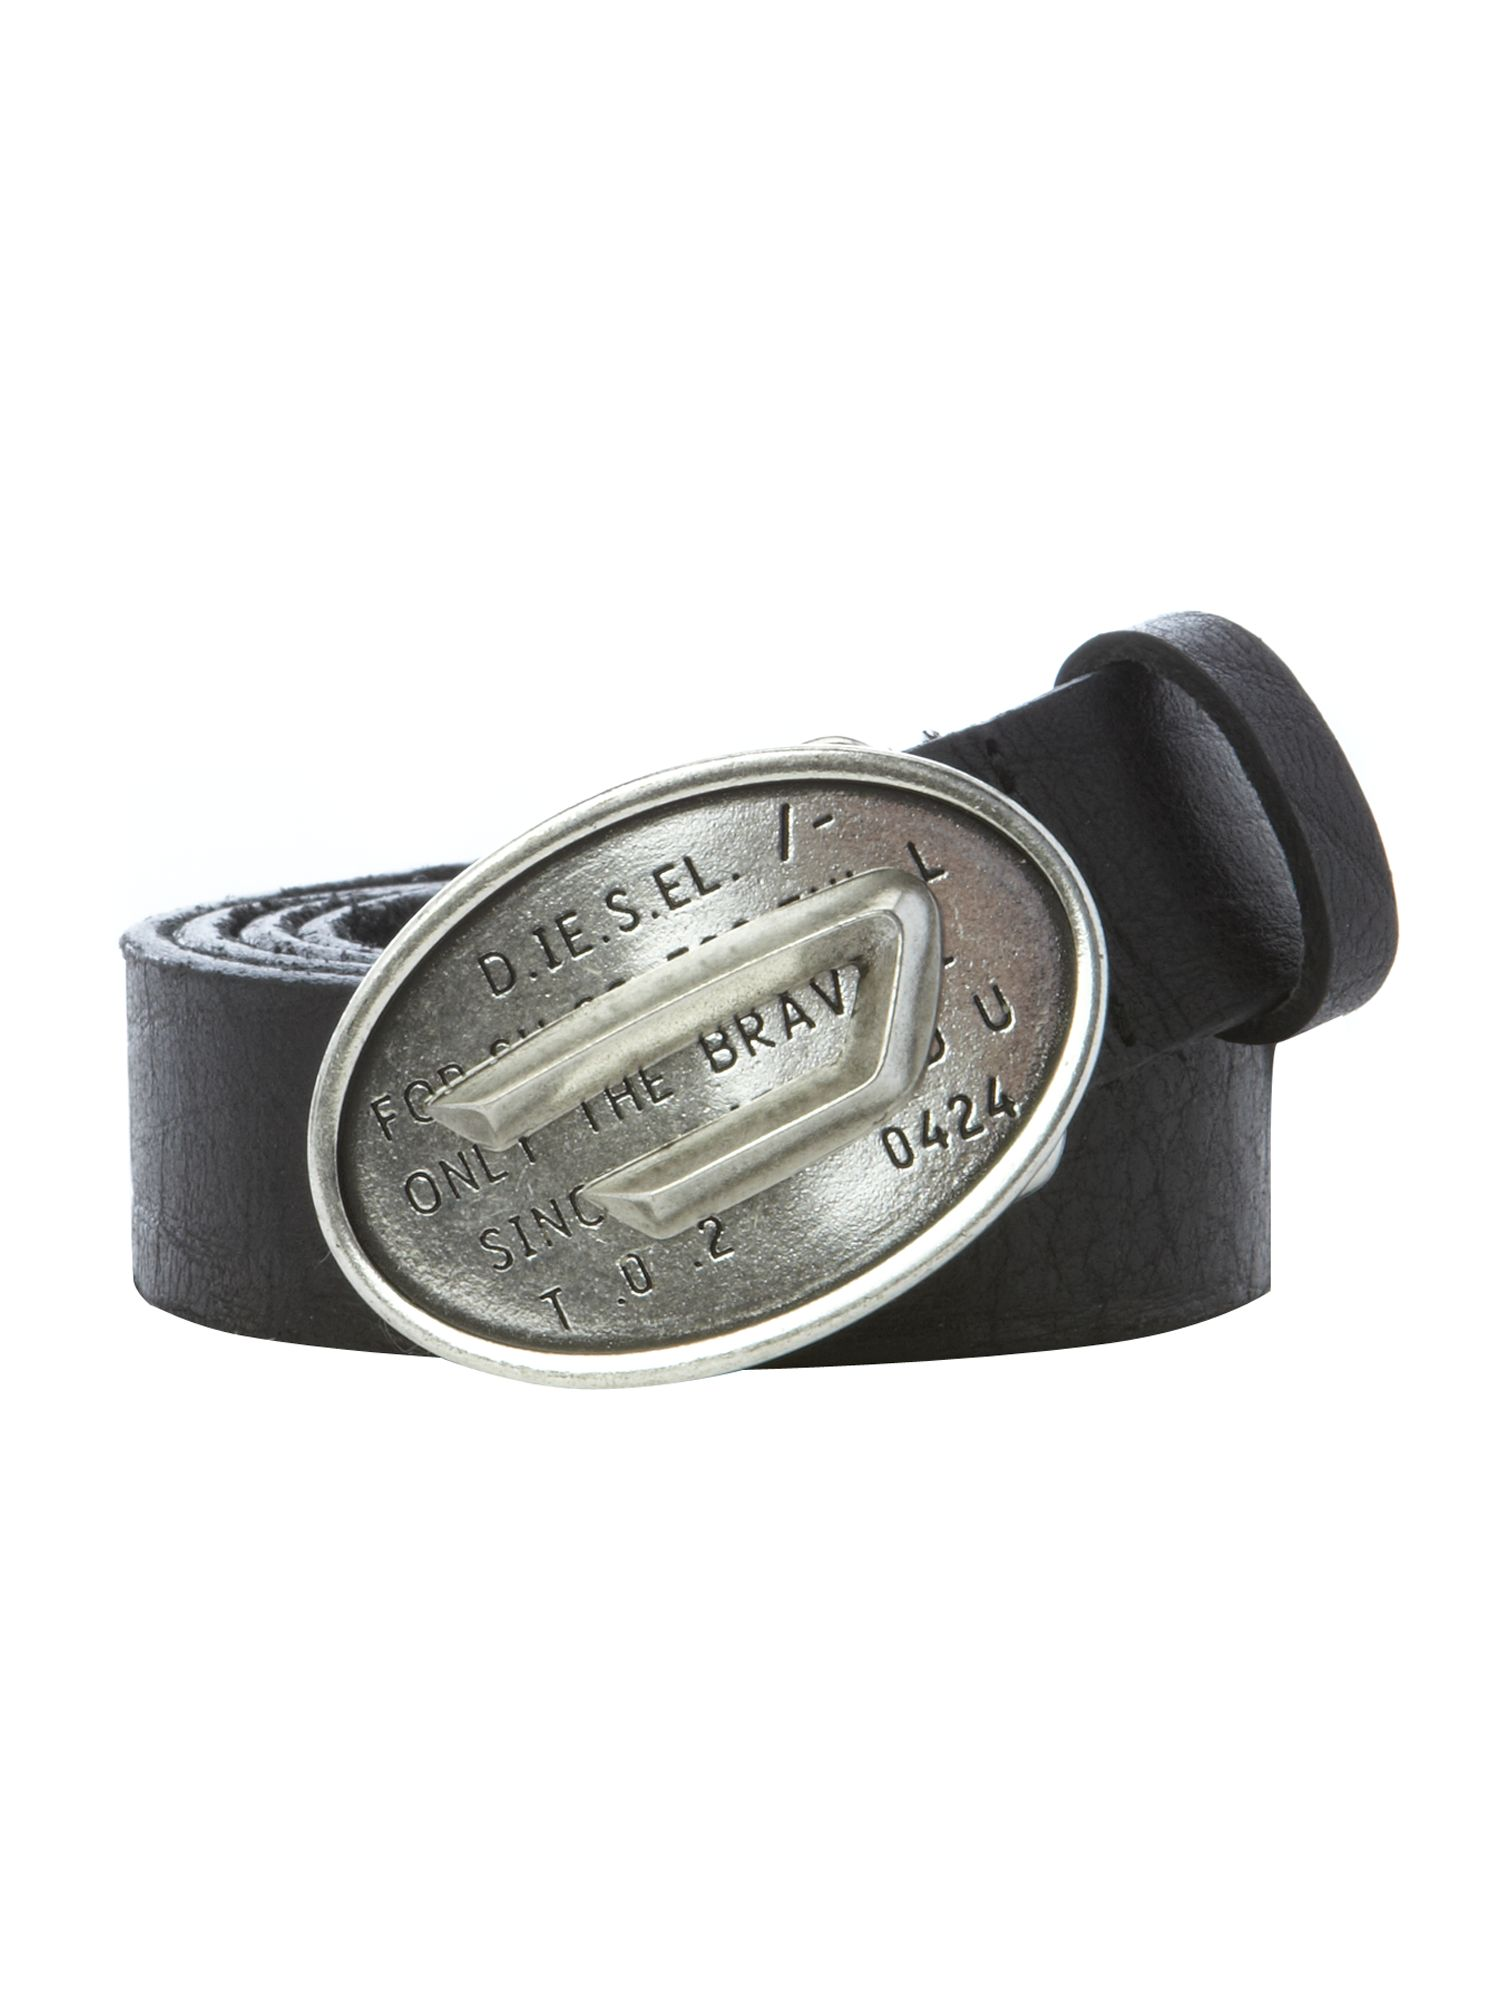 Bskei logo plaque belt